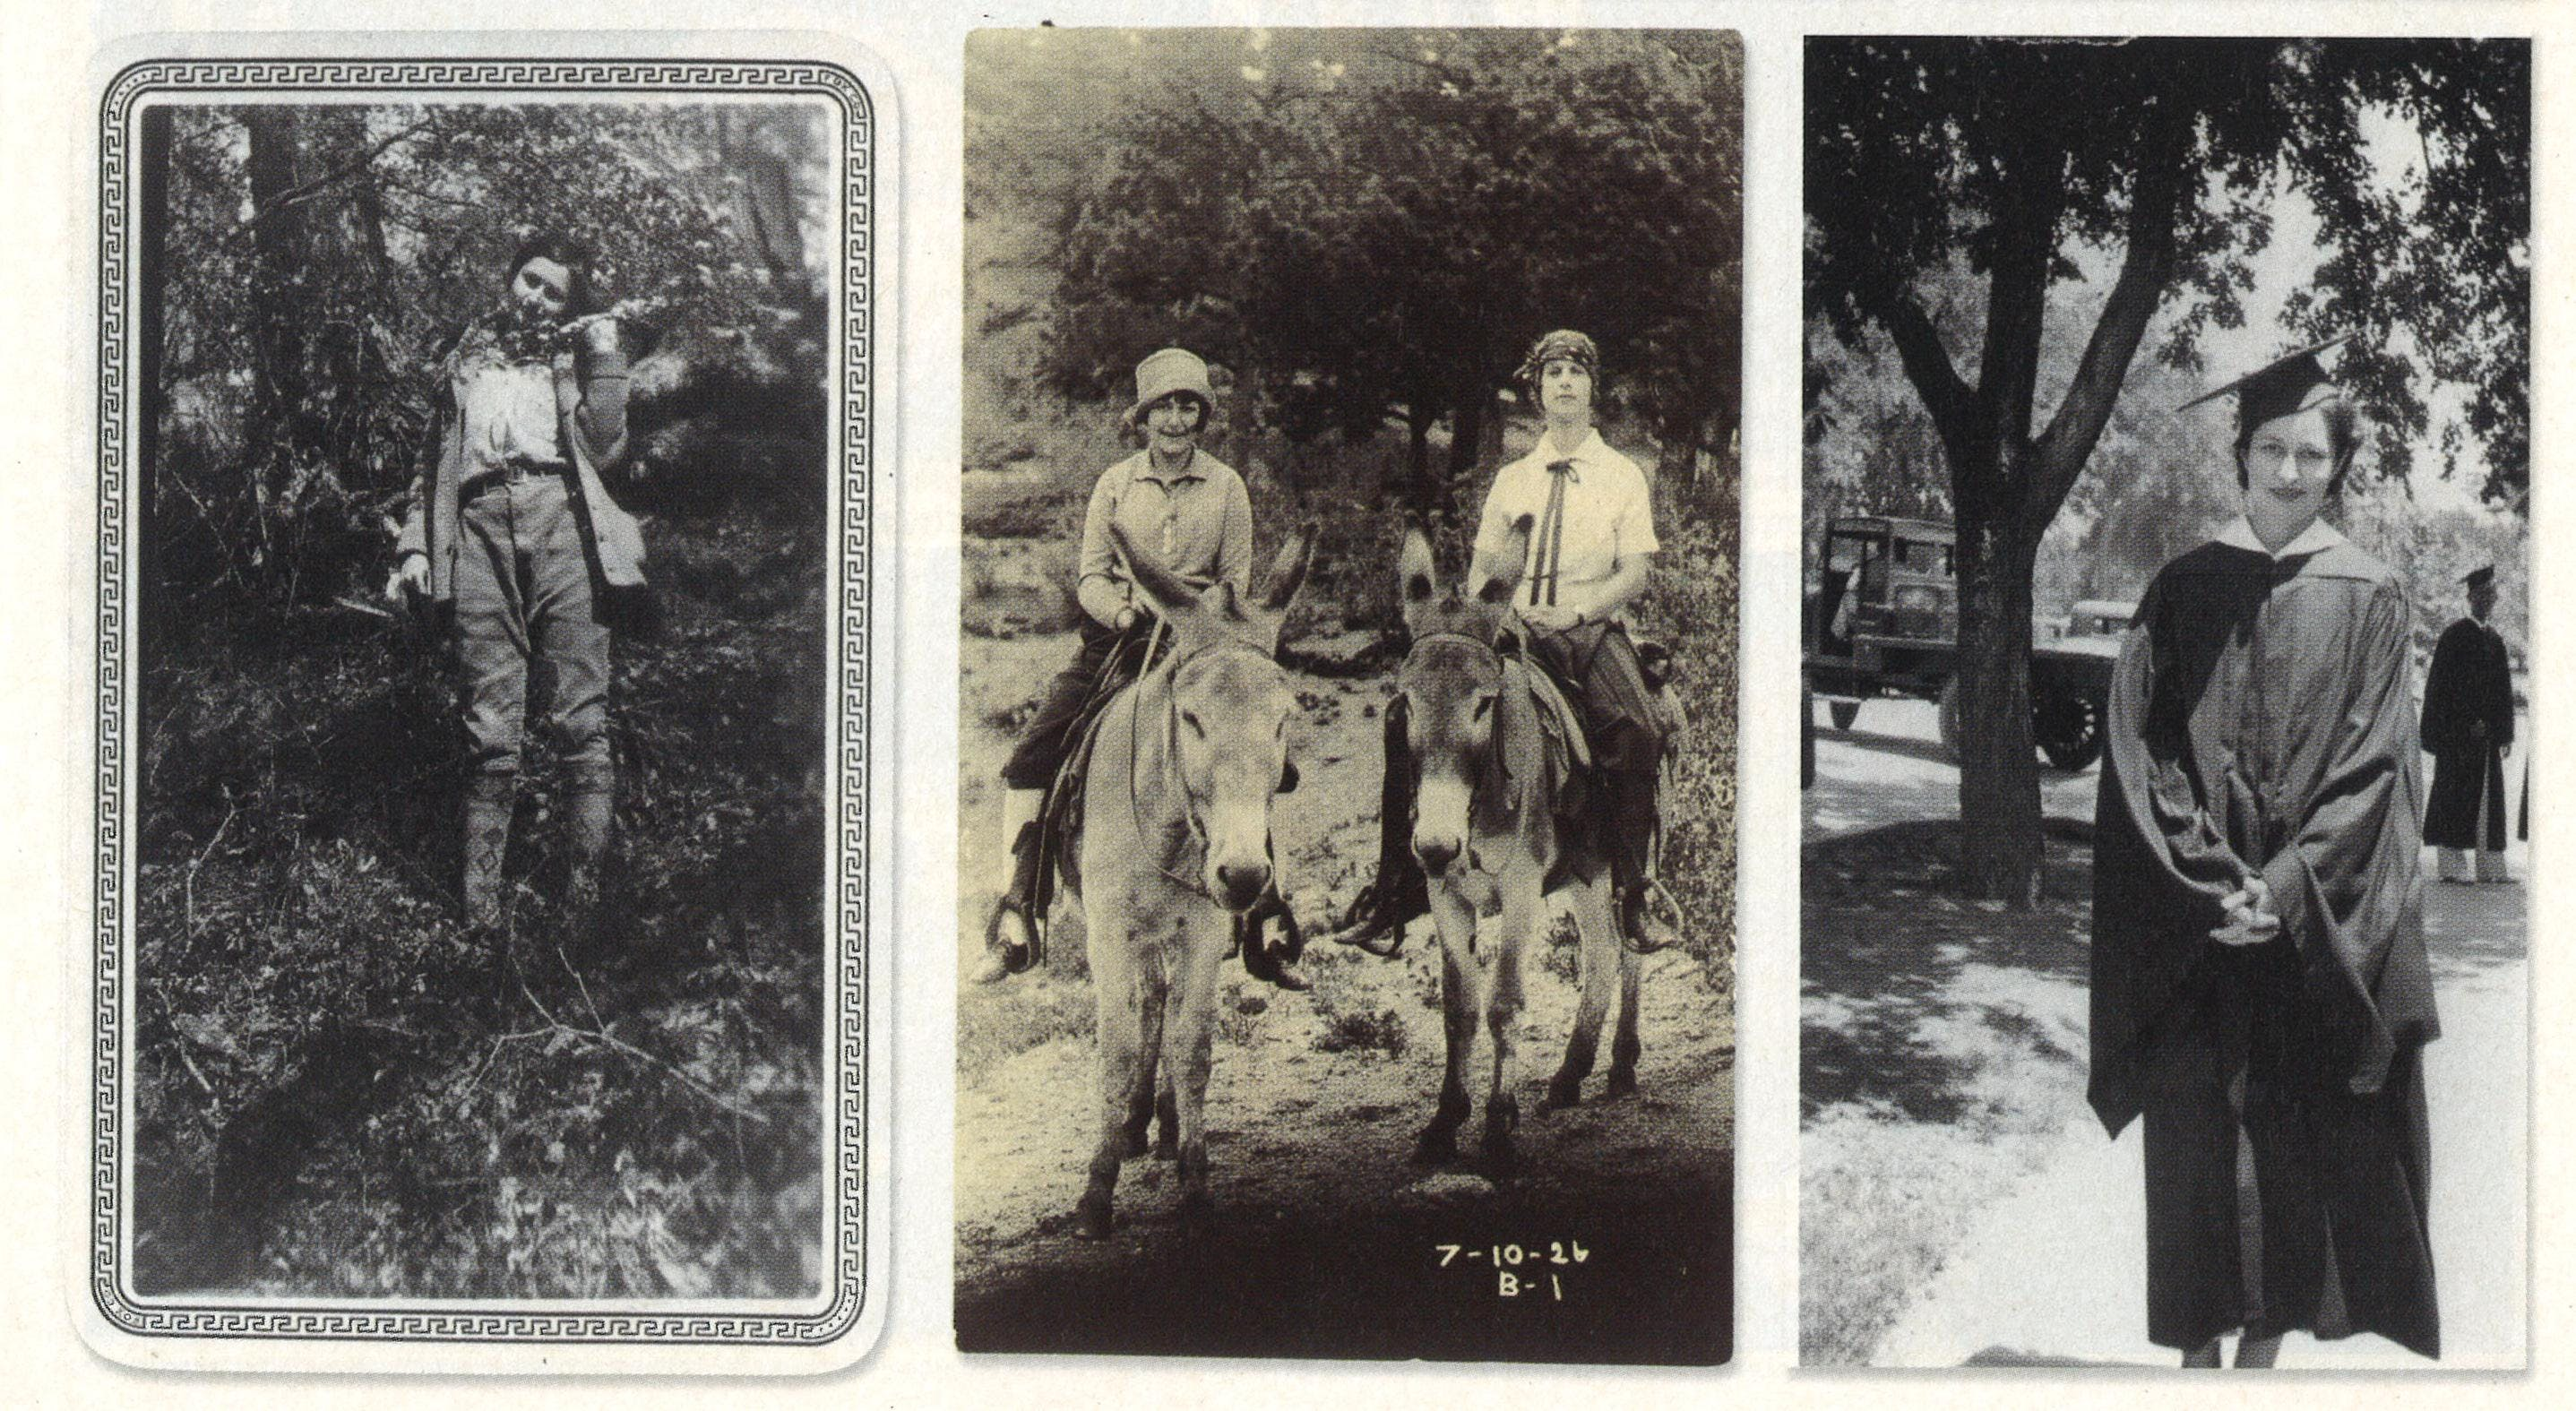 From left: Near Caddo Lake (date unknown). Riding donkeys with a friend in 1926. At her graduation from the University of Texas in 1934.